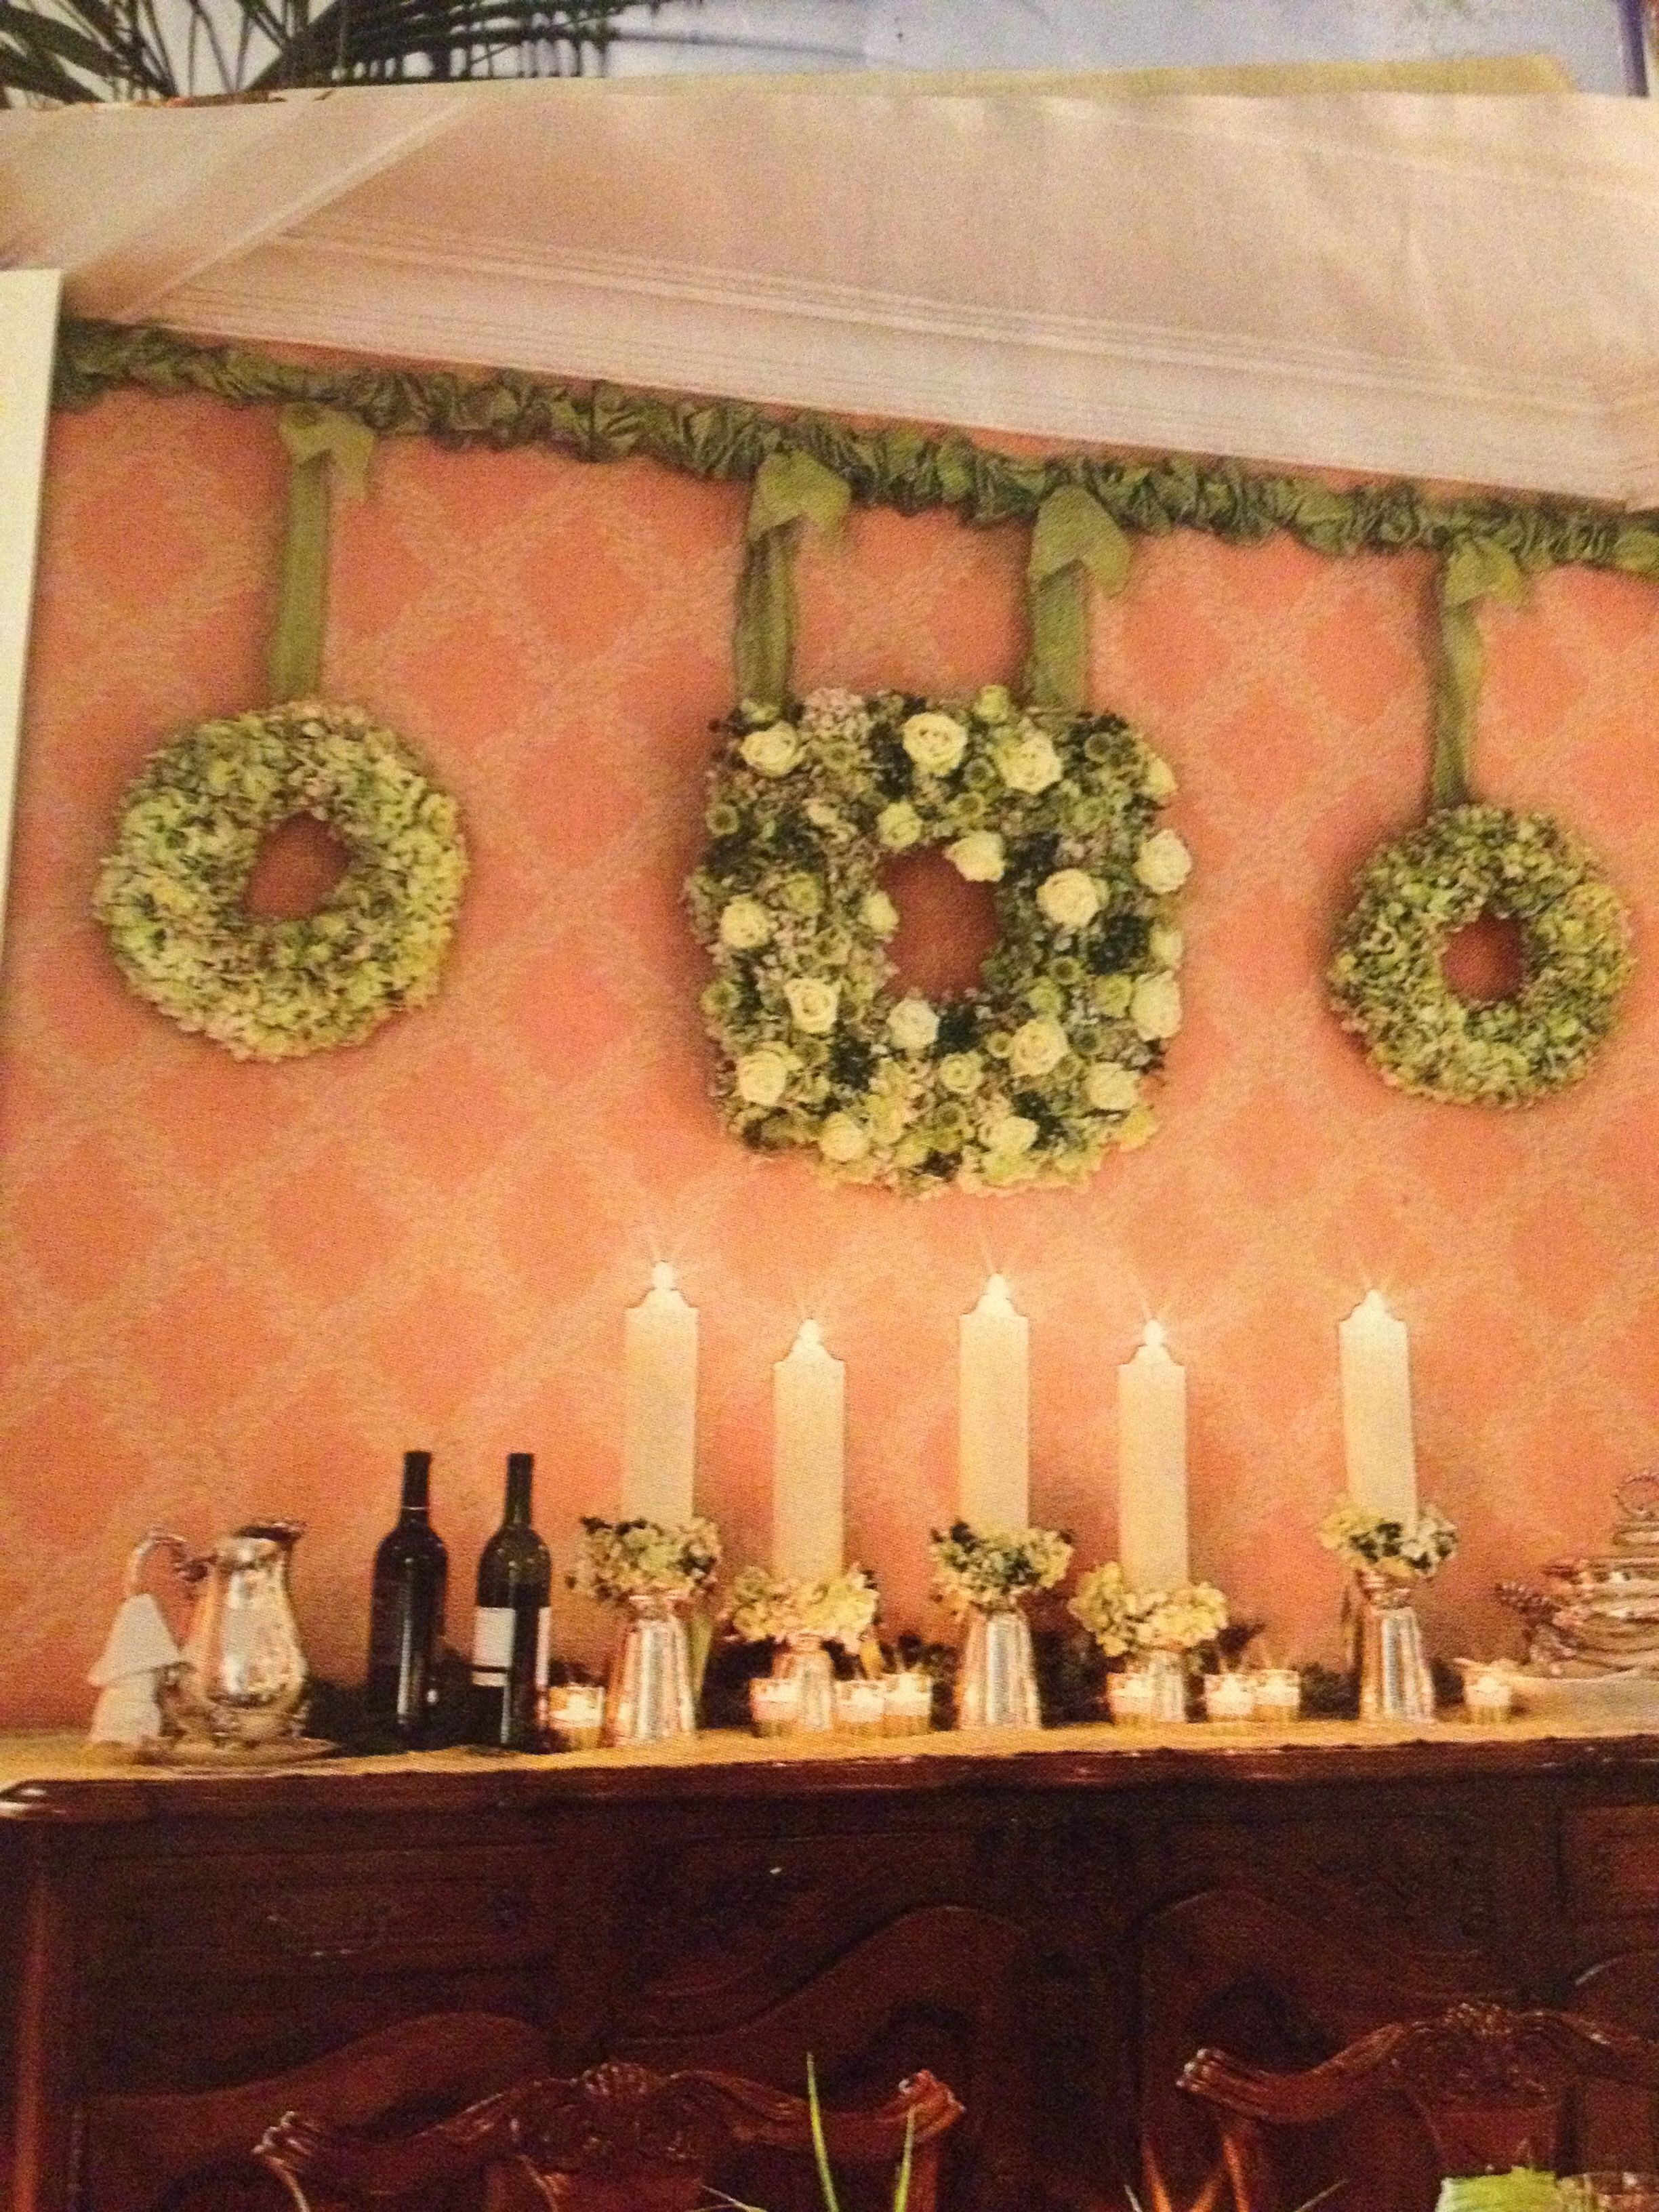 Wreaths hanging from curtain rod